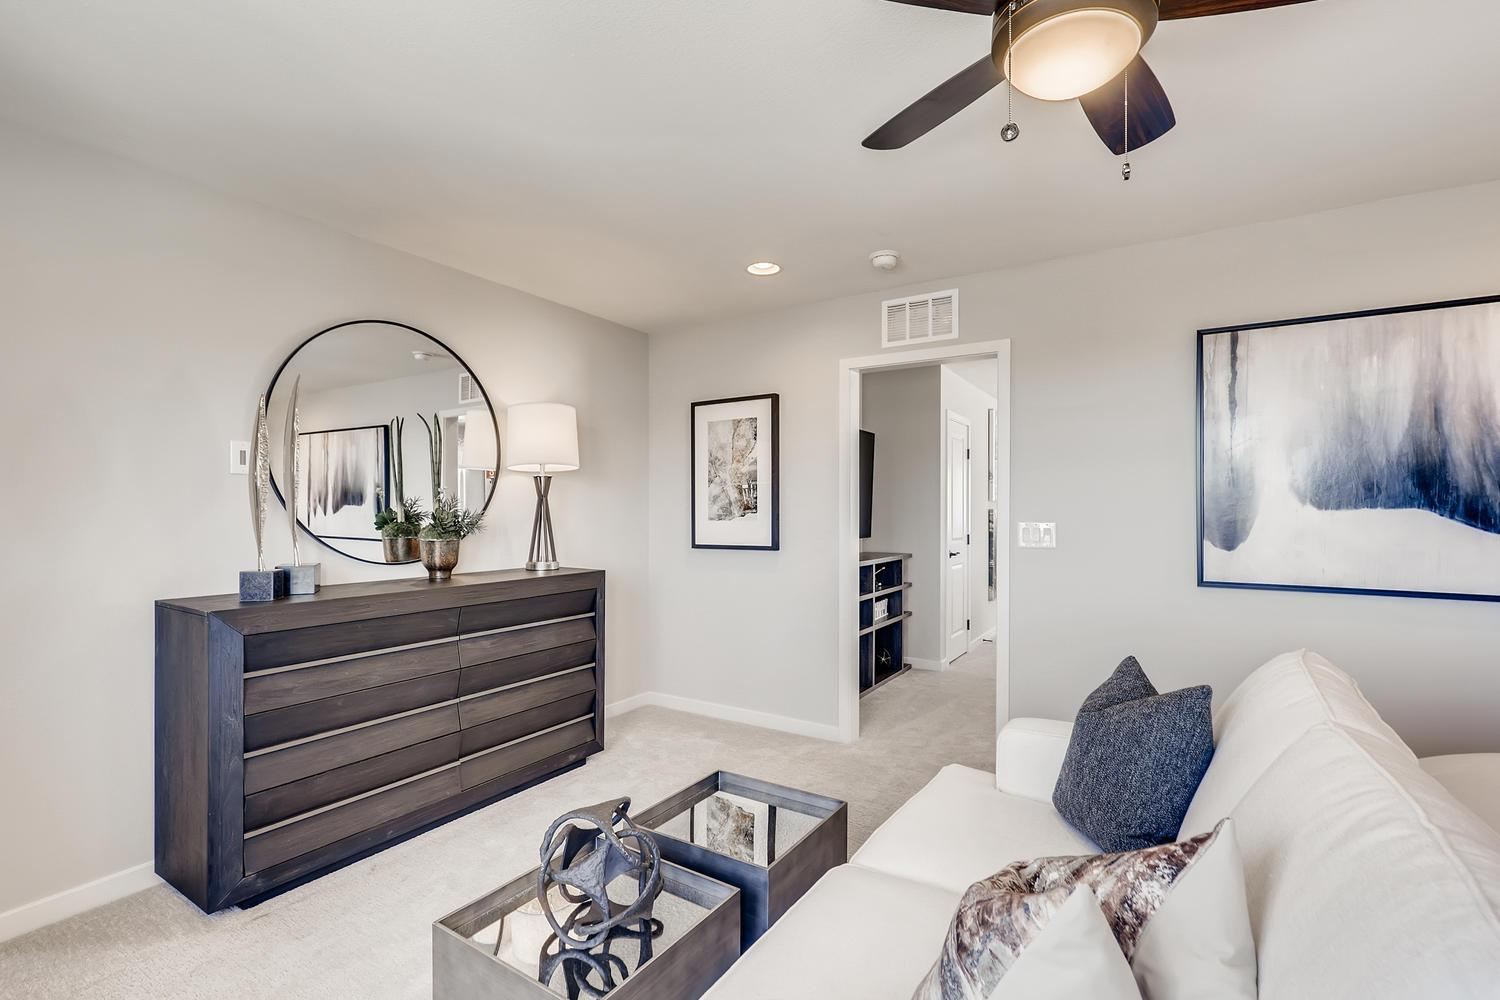 Living Area featured in the Magnolia at Silverleaf By Taylor Morrison in Las Vegas, NV